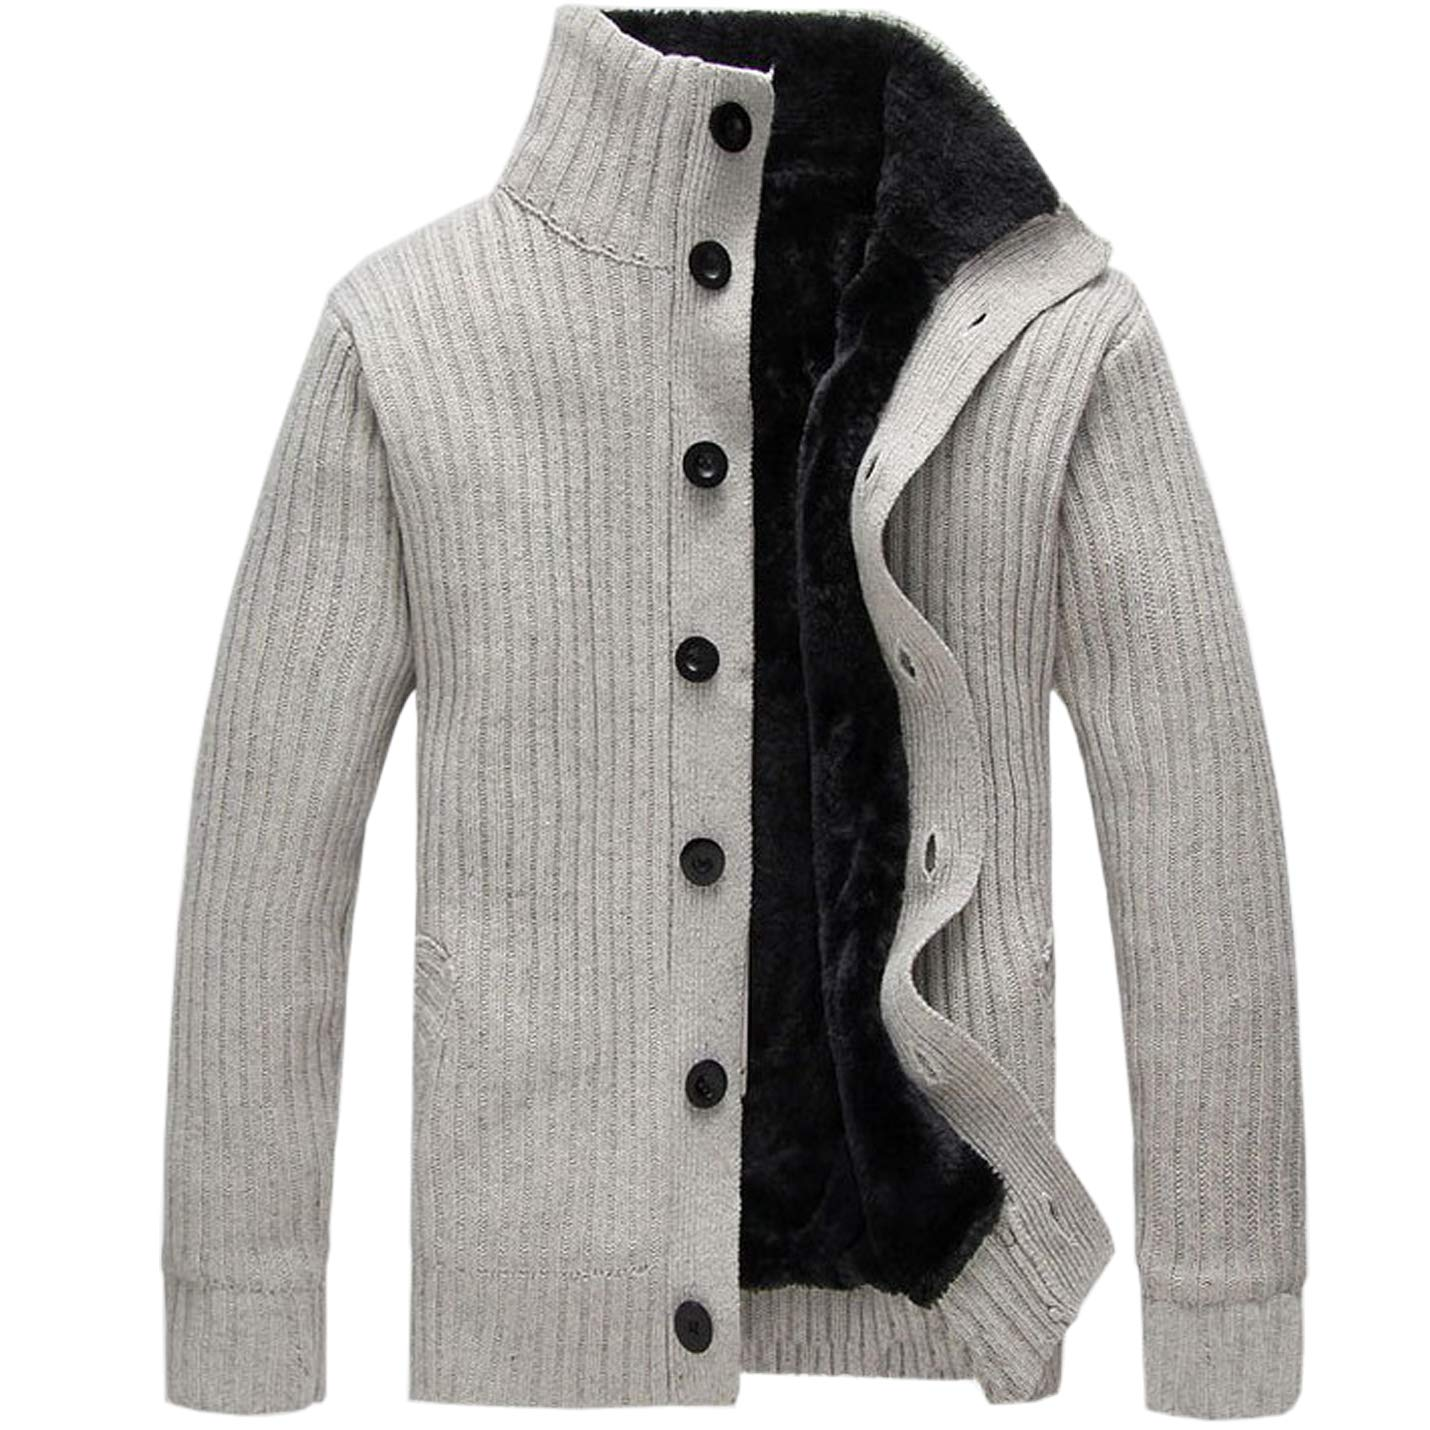 Flygo Men's Casual Faux Fur Lined Single-Breasted Thicken Knitted Cardigan Sweater